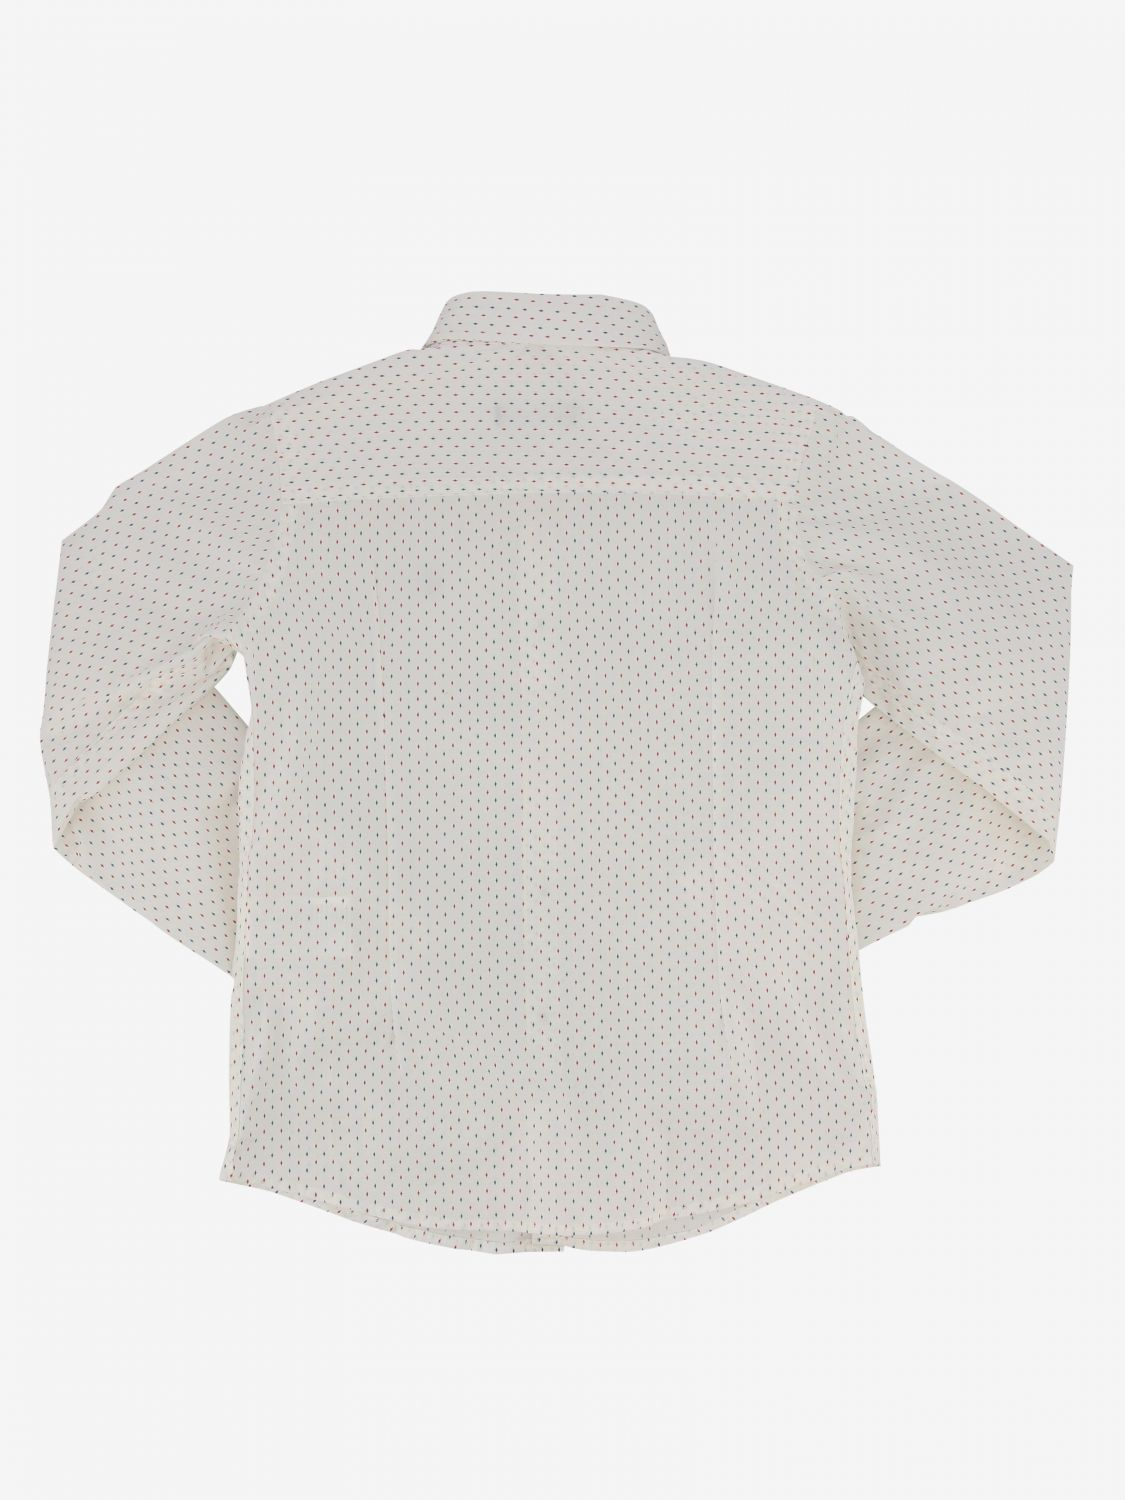 Shirt kids Jeckerson white 2